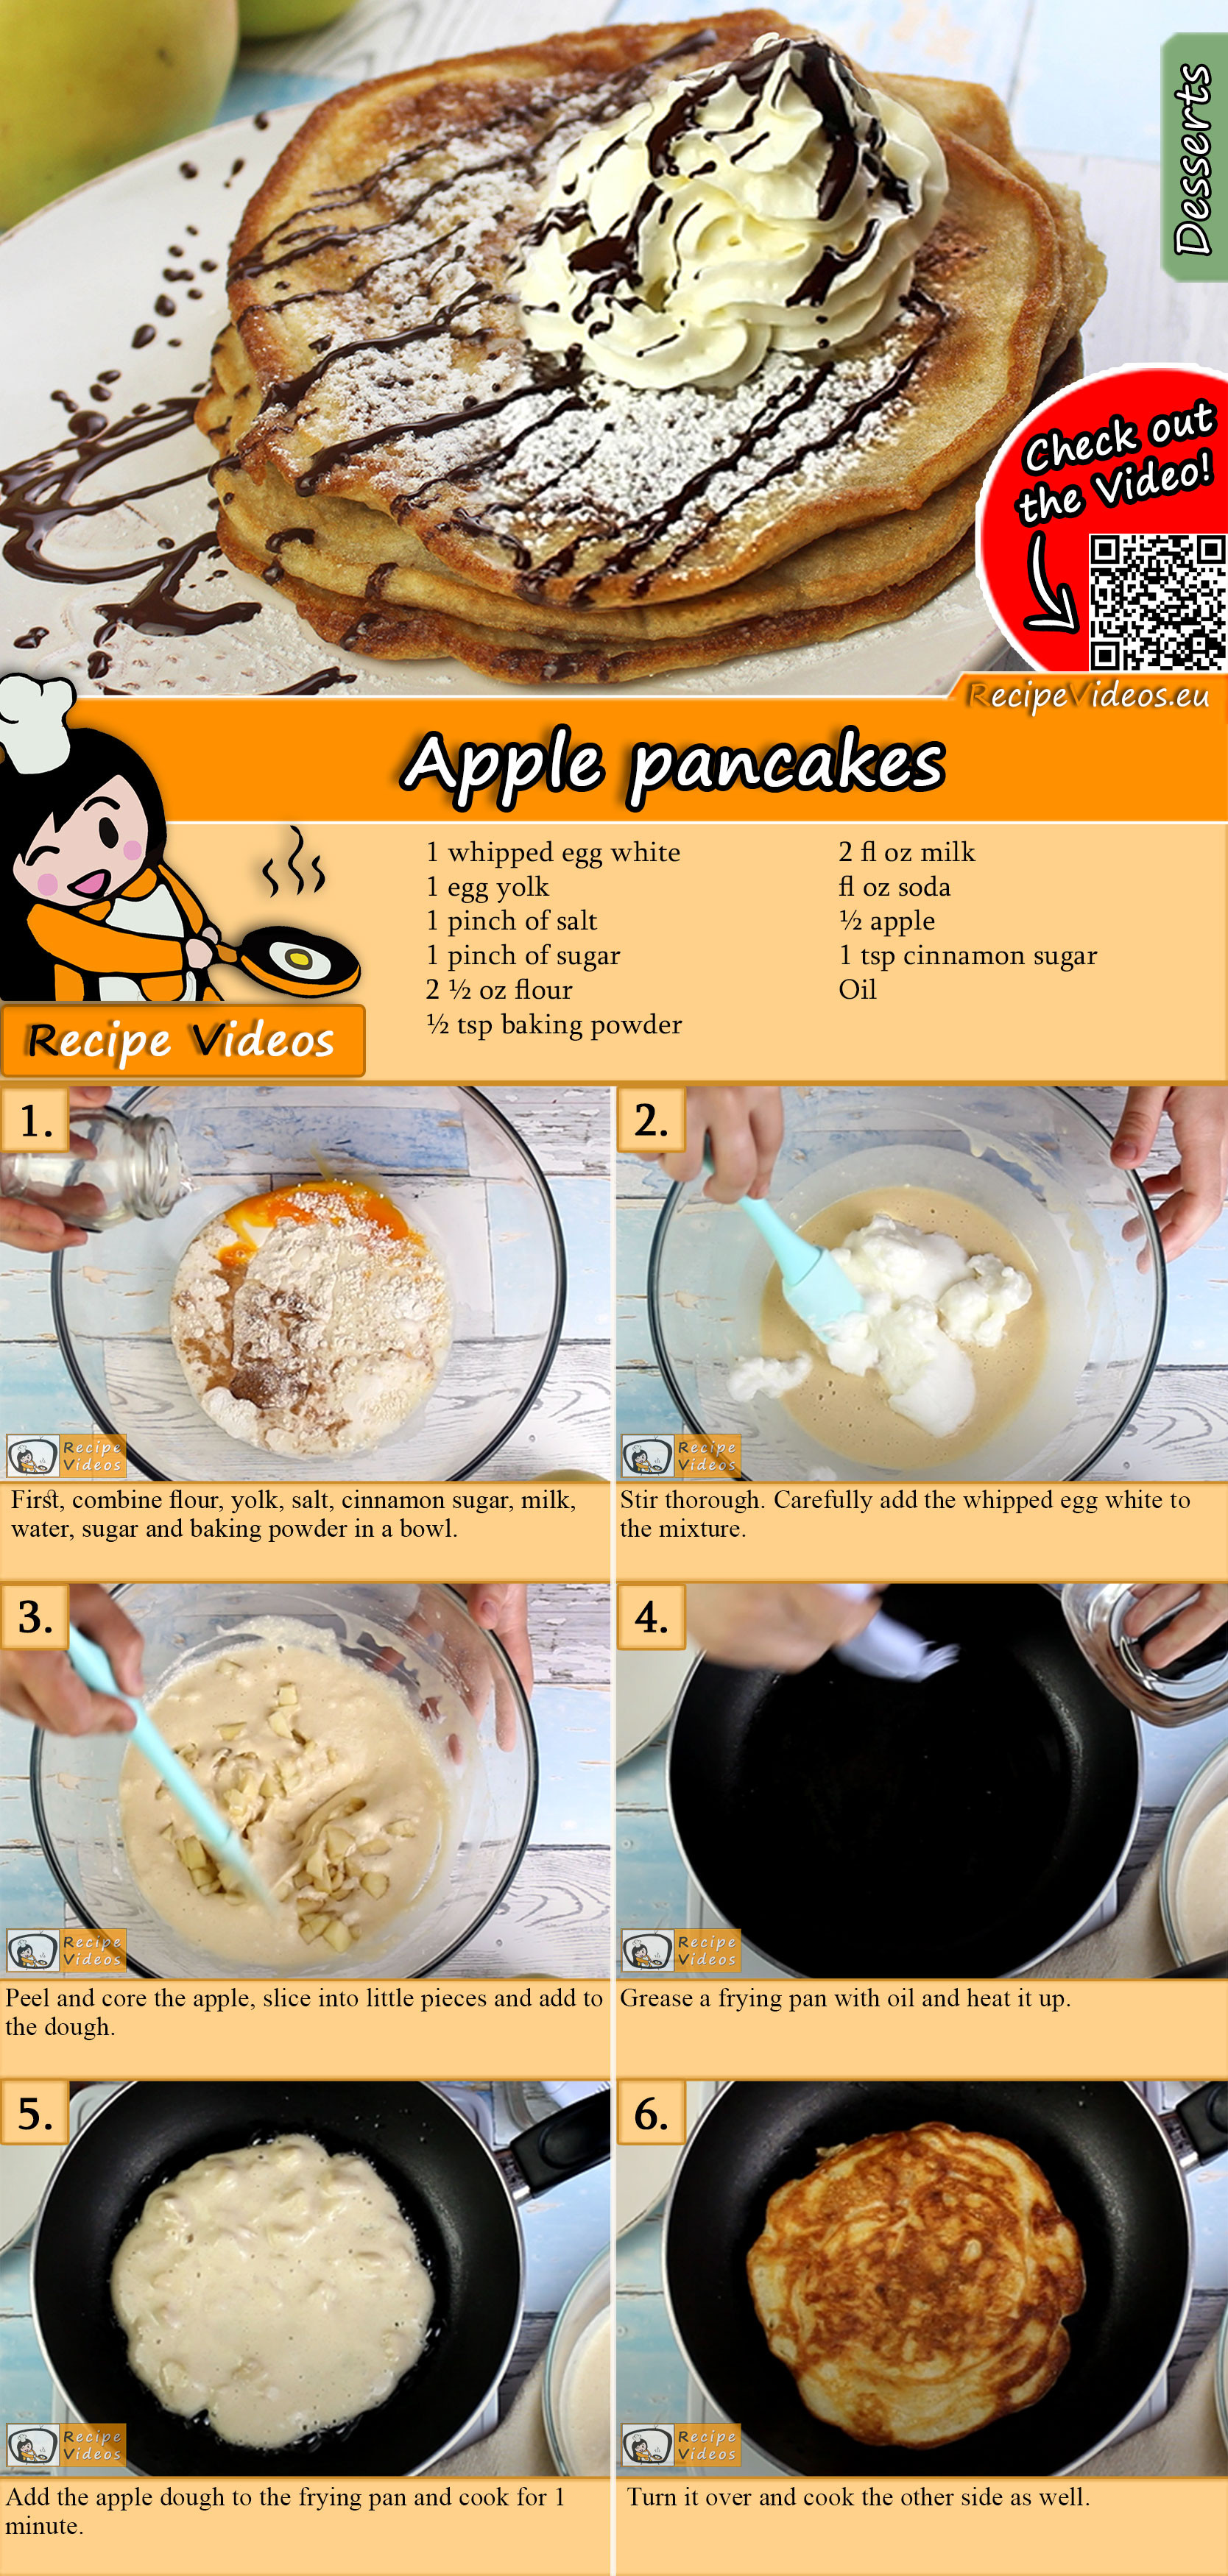 Apple pancakes recipe with video